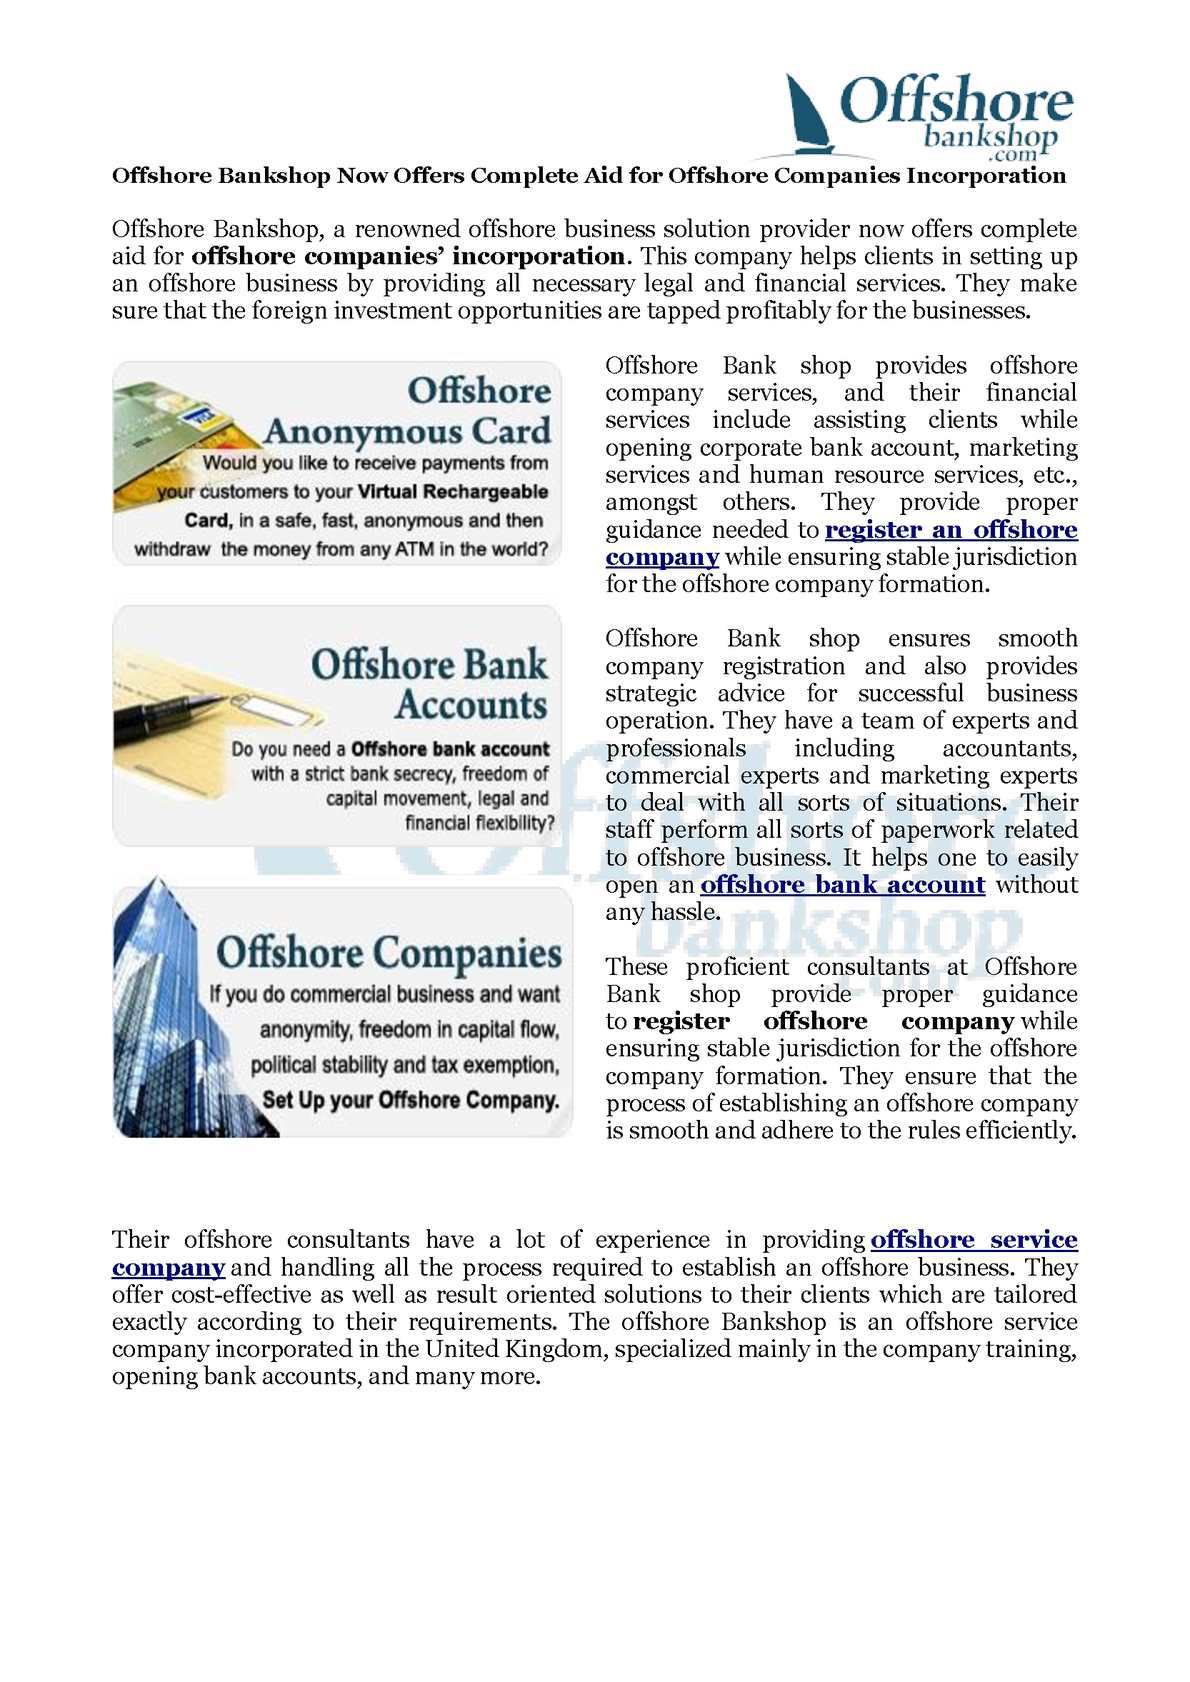 Calaméo - Offshore Bankshop Now Offers Complete Aid for Offshore